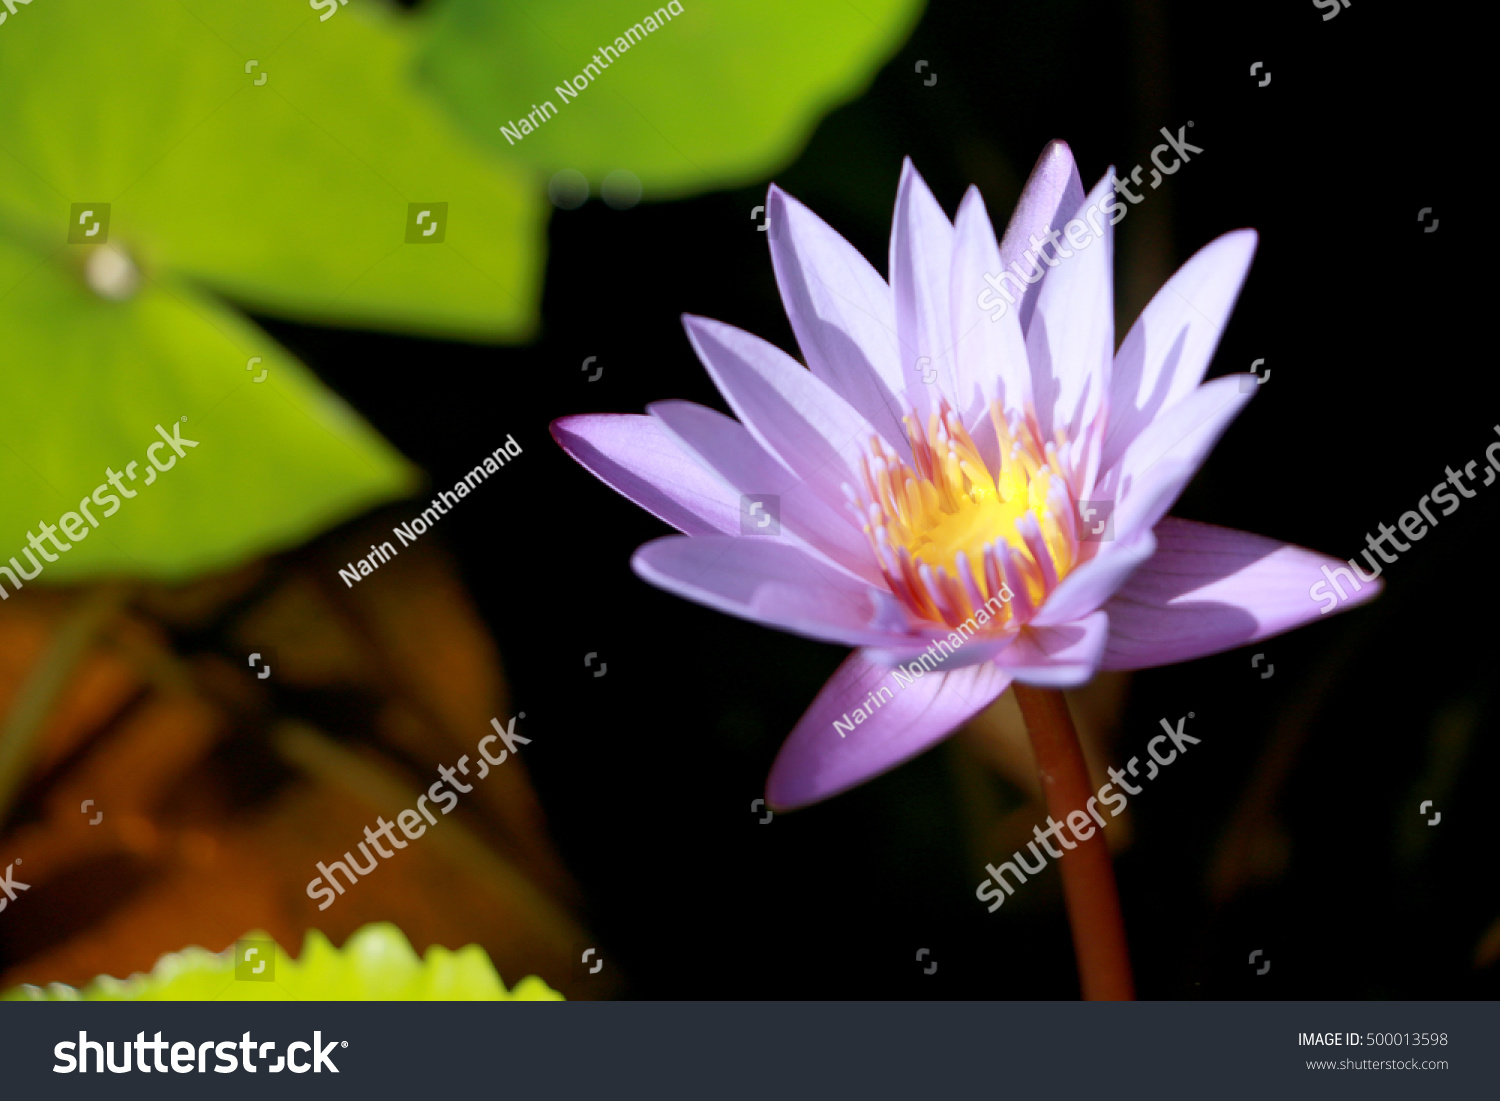 This Beautiful Waterlily Or Purple Lotus Flower Is Complimented By